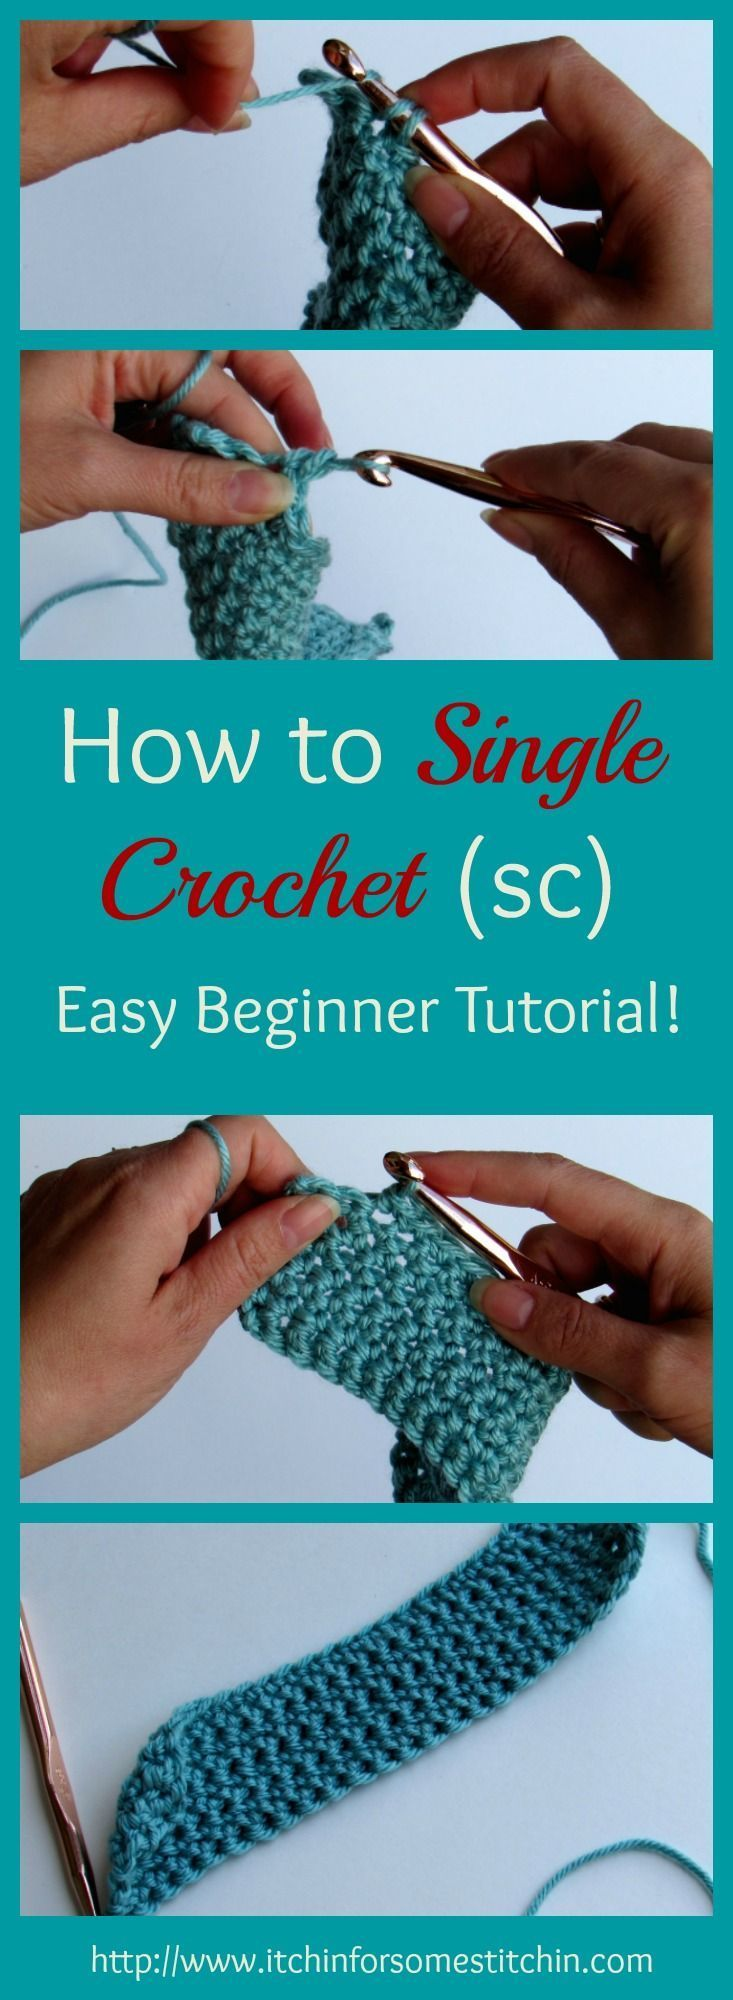 How to Single Crochet: 6 Easy Steps - Itchin' for some Stitchin'